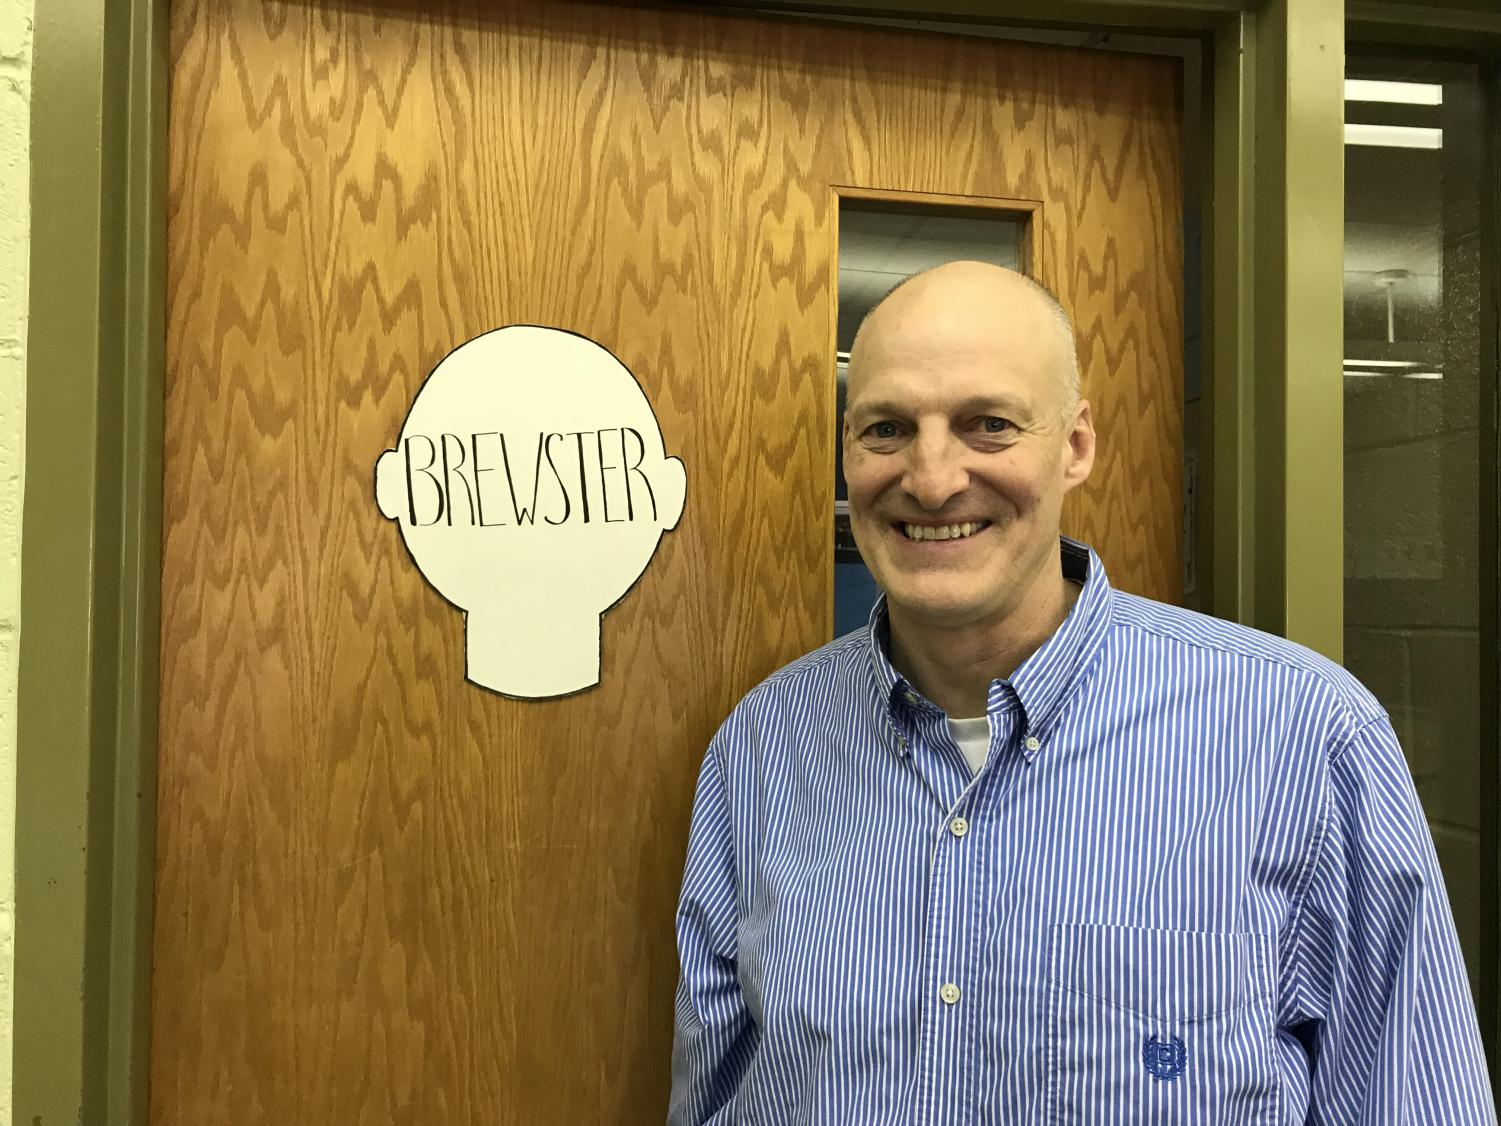 KNIGHTS IN THE CASTLE- Mr. Phil Brewster outside of his classroom in the math department at North Penn High School.